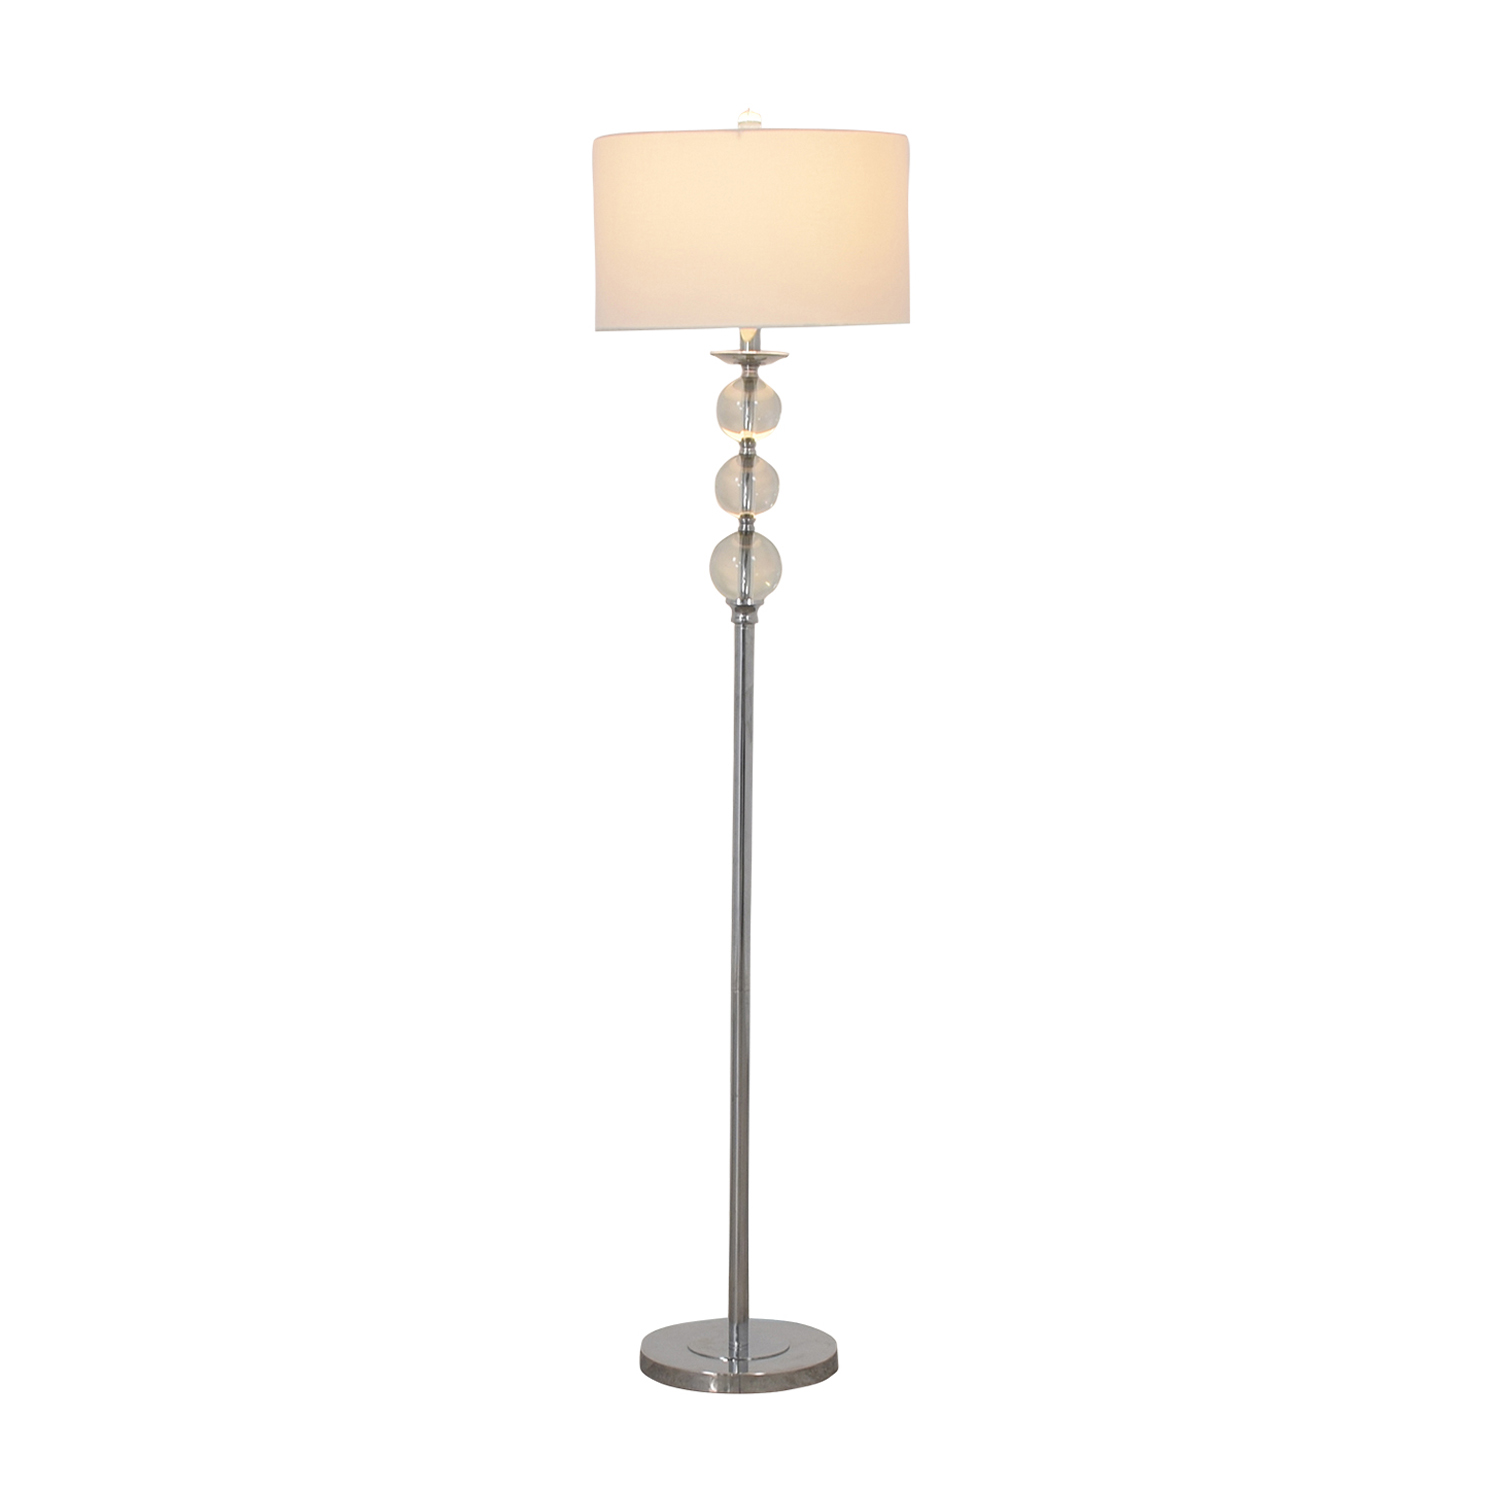 Safavieh Safavieh Friedman Chrome and Glass Floor Lamp